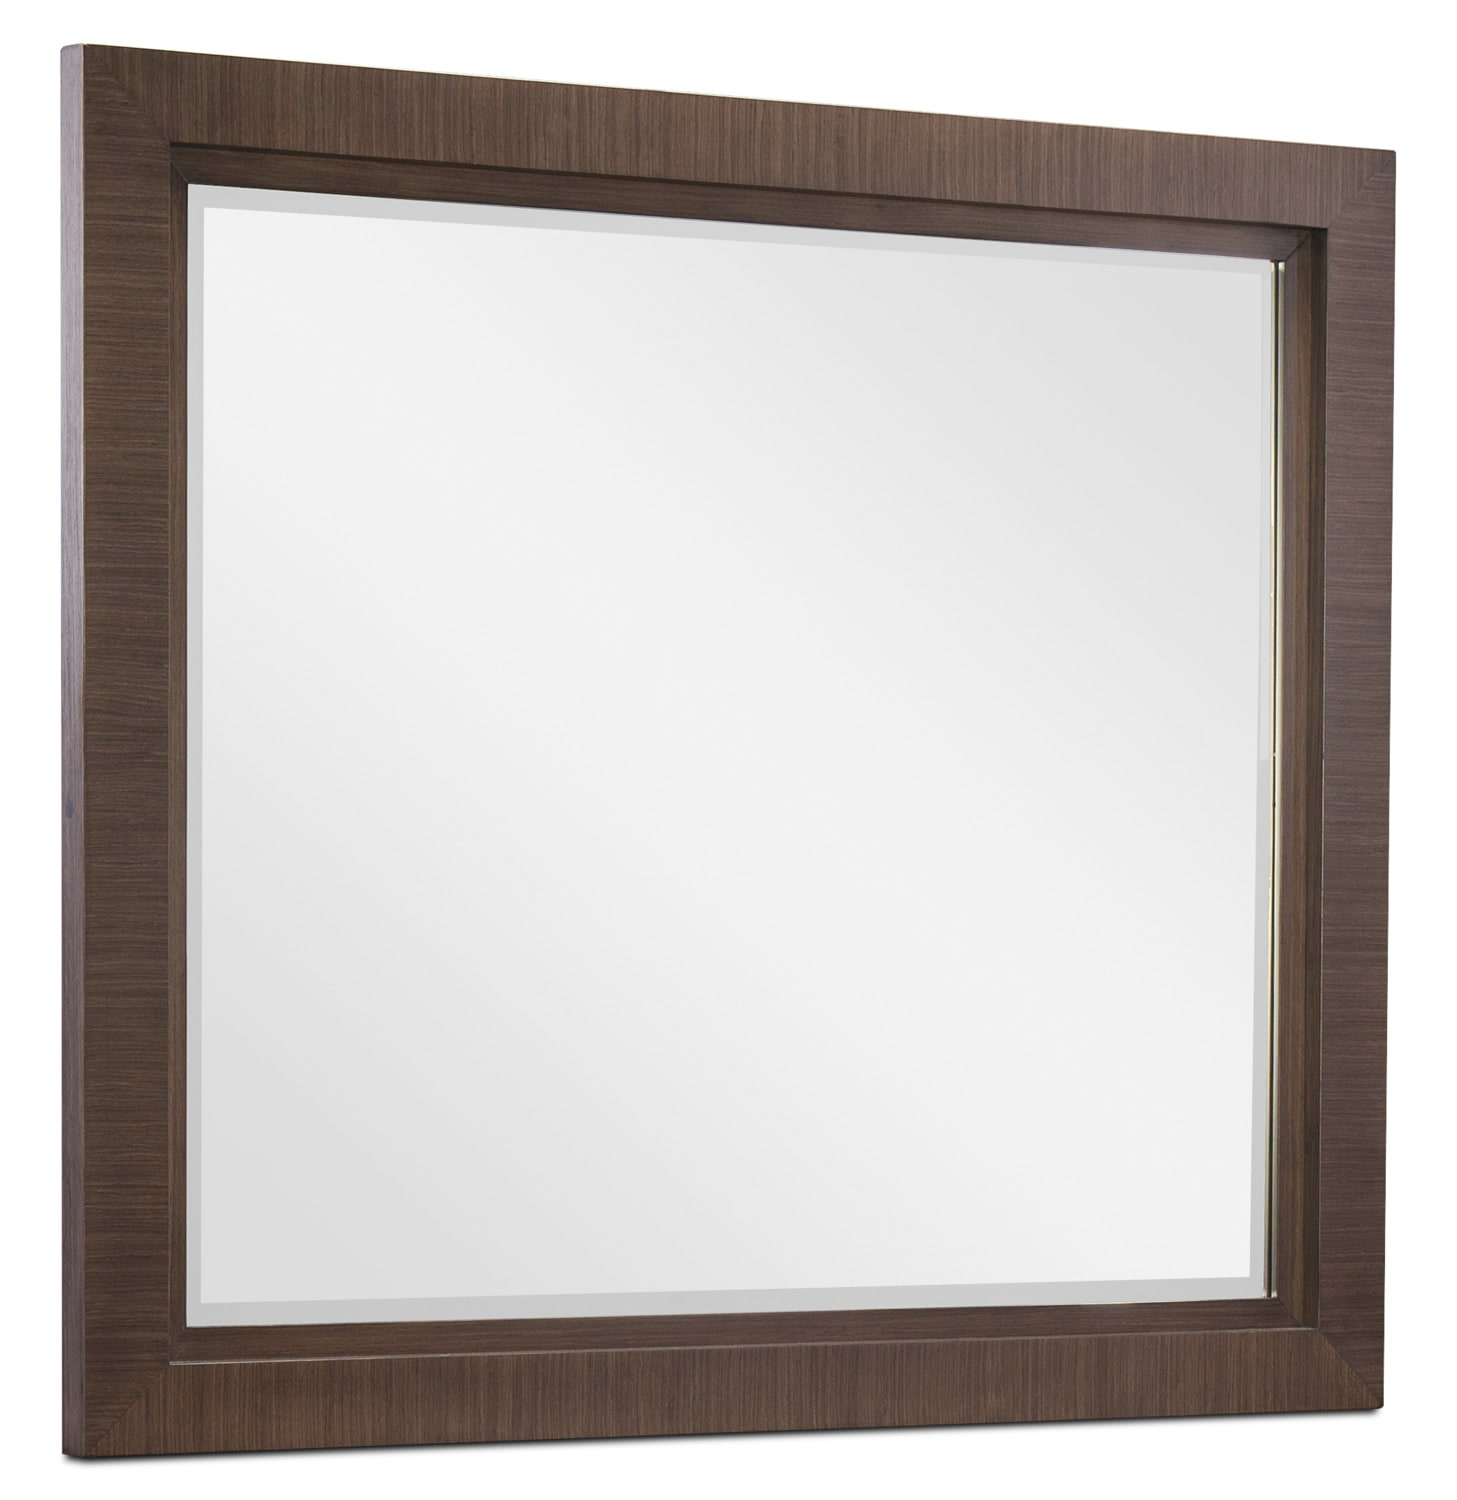 Bedroom Furniture - Rachael Ray Soho Mirror - Ash Brown